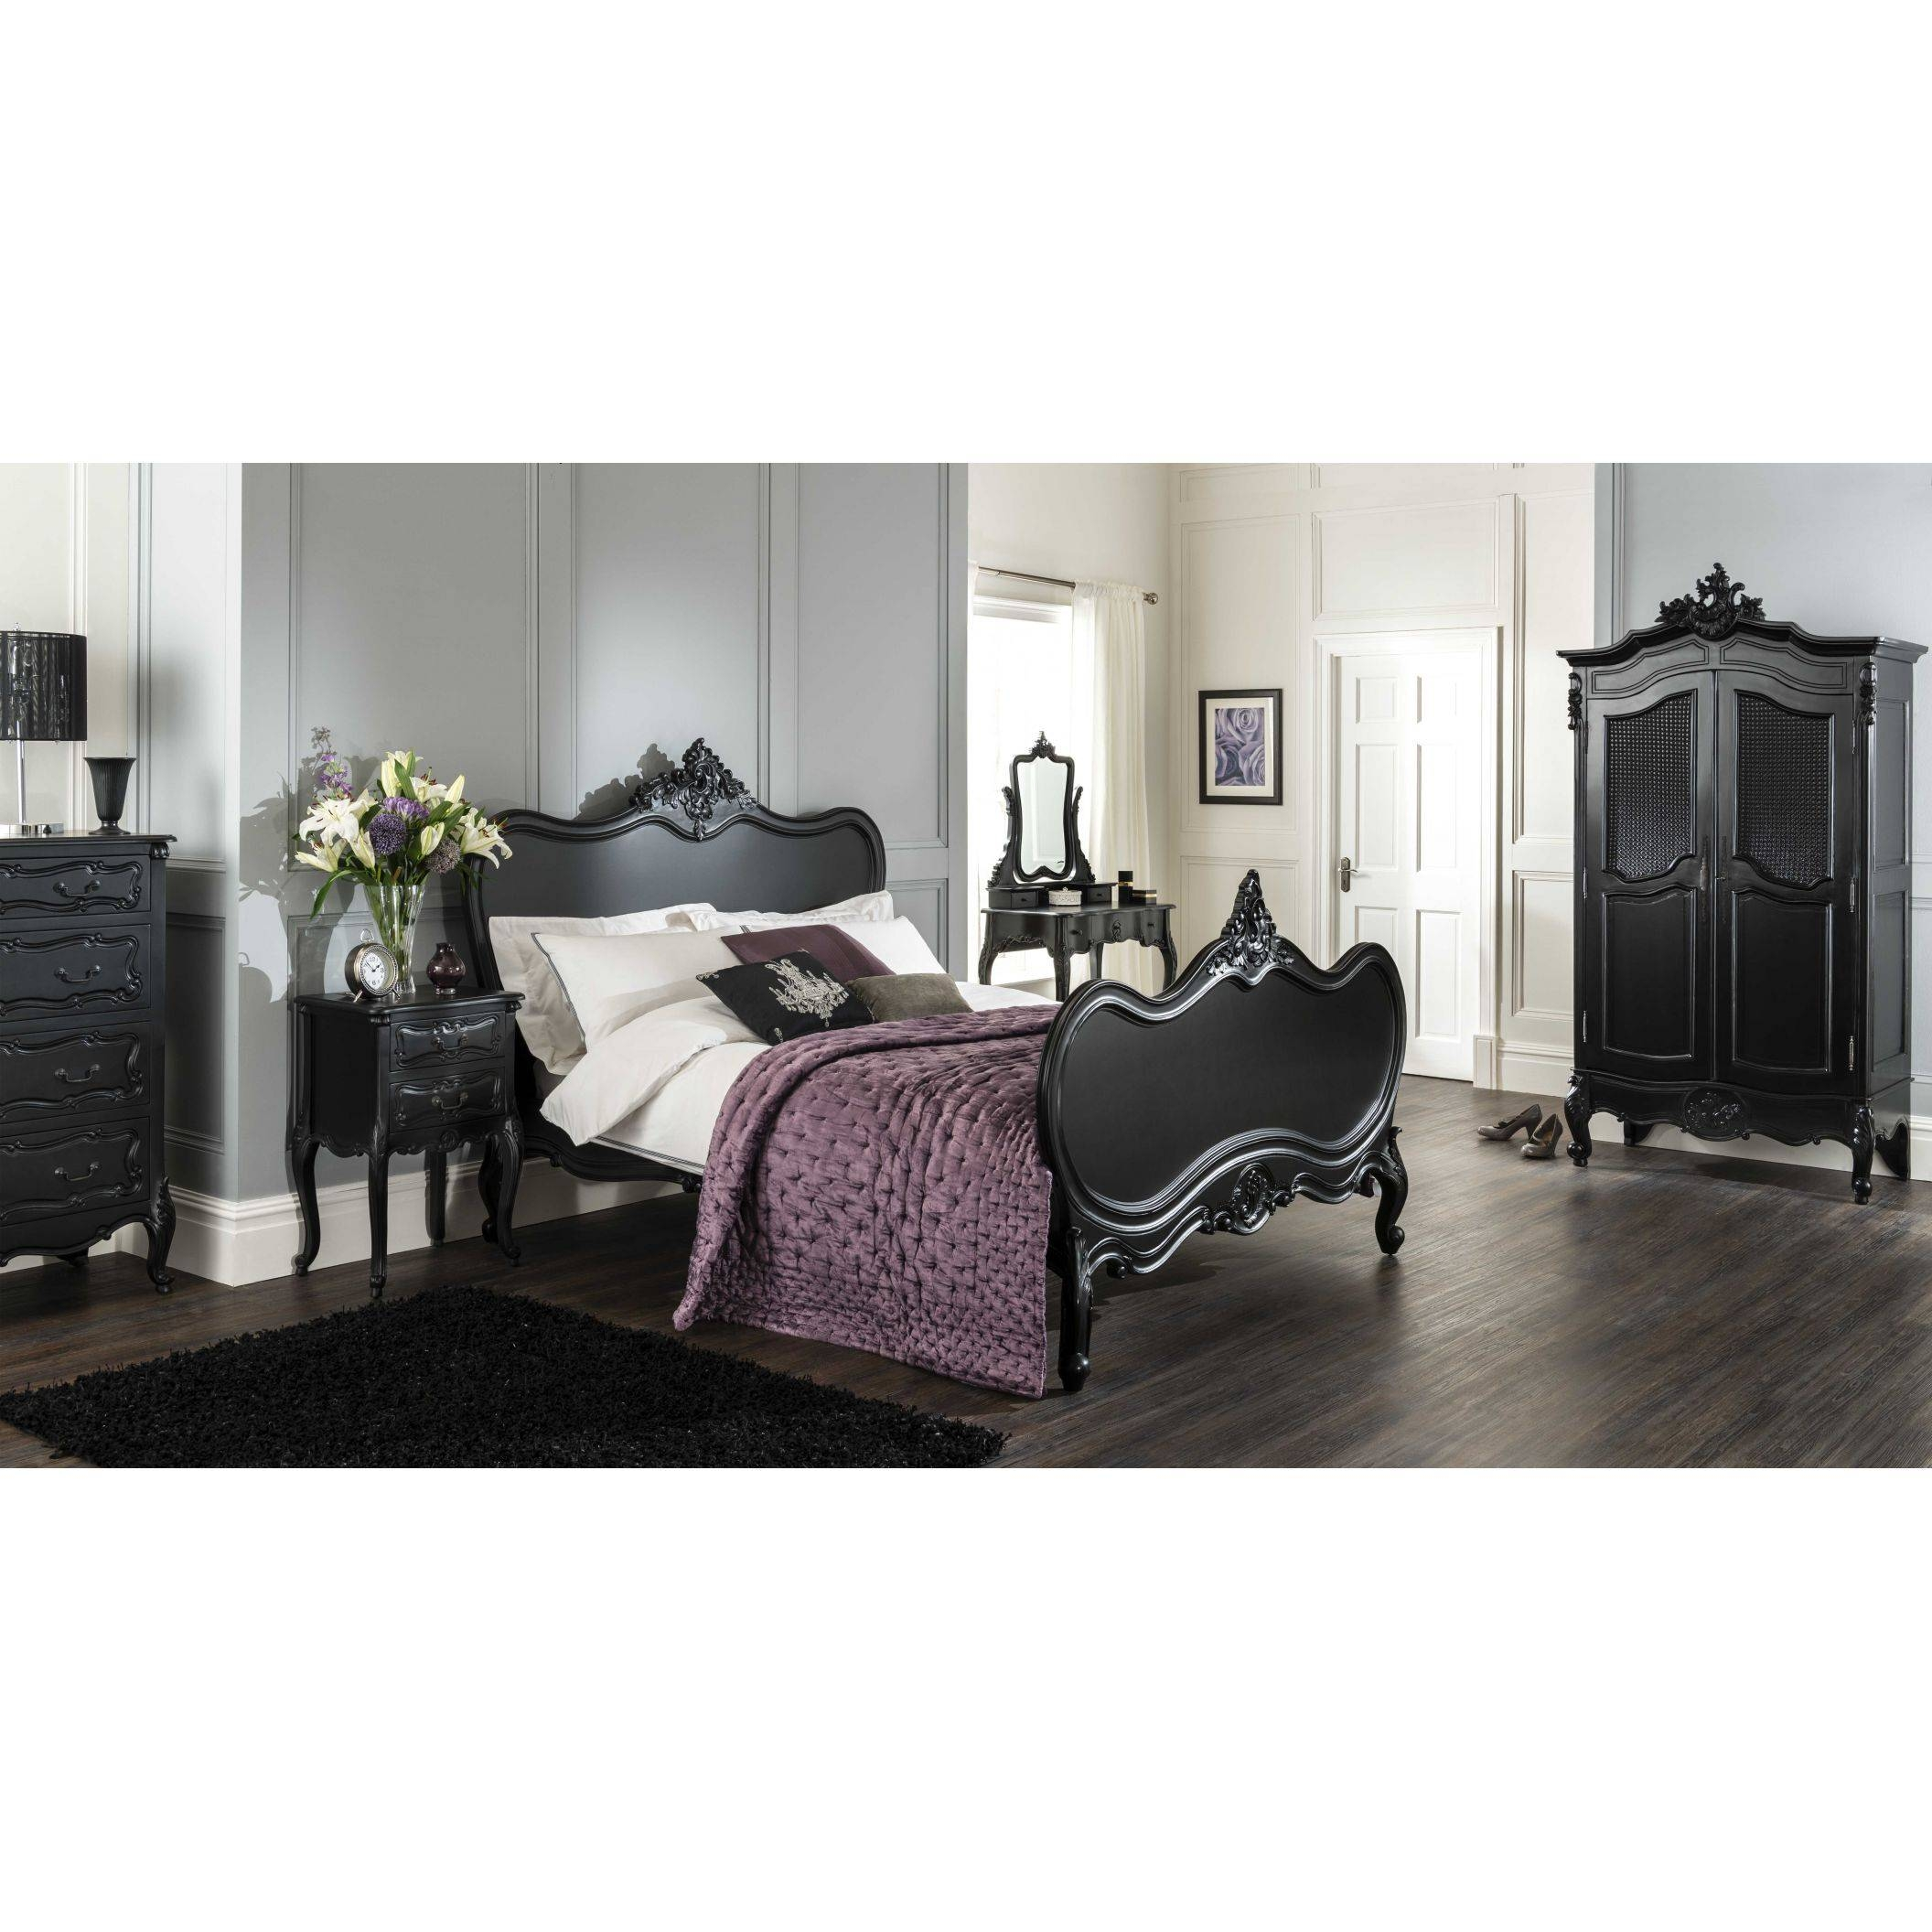 La Rochelle Antique French Wardrobe | Black Painted Furniture throughout Black French Style Wardrobes (Image 12 of 15)